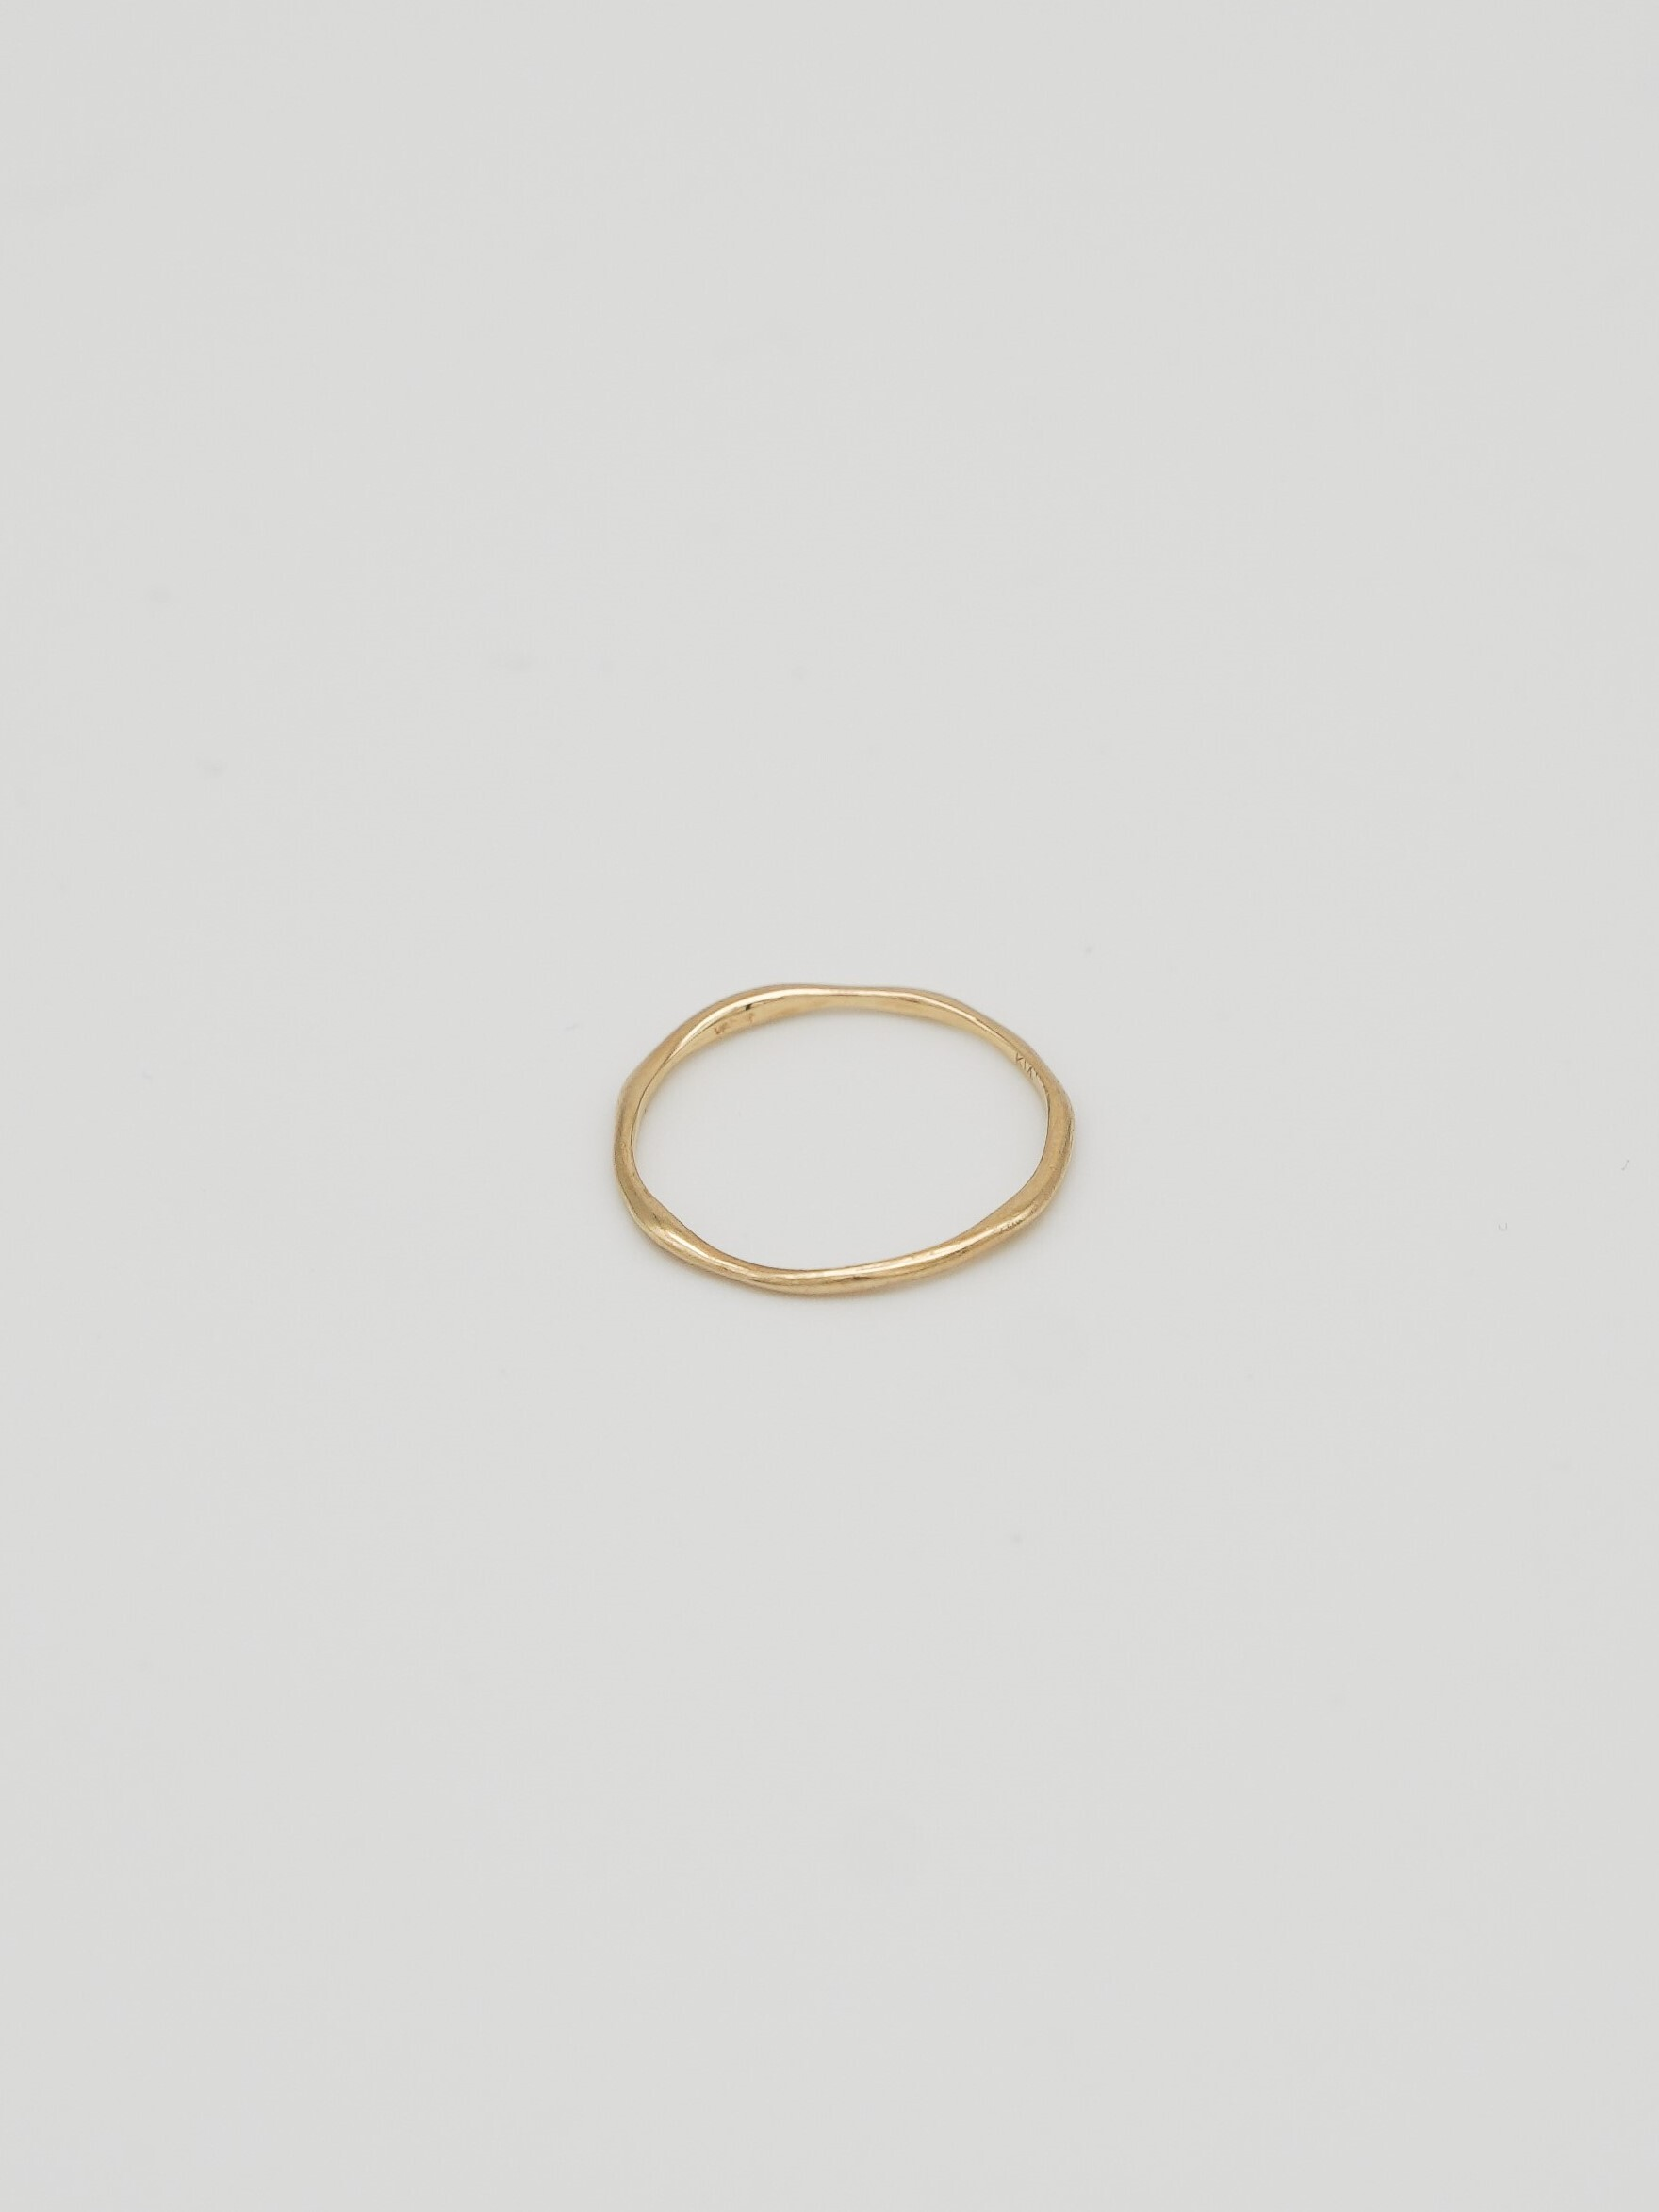 twig ring s / gold K14(再入荷)